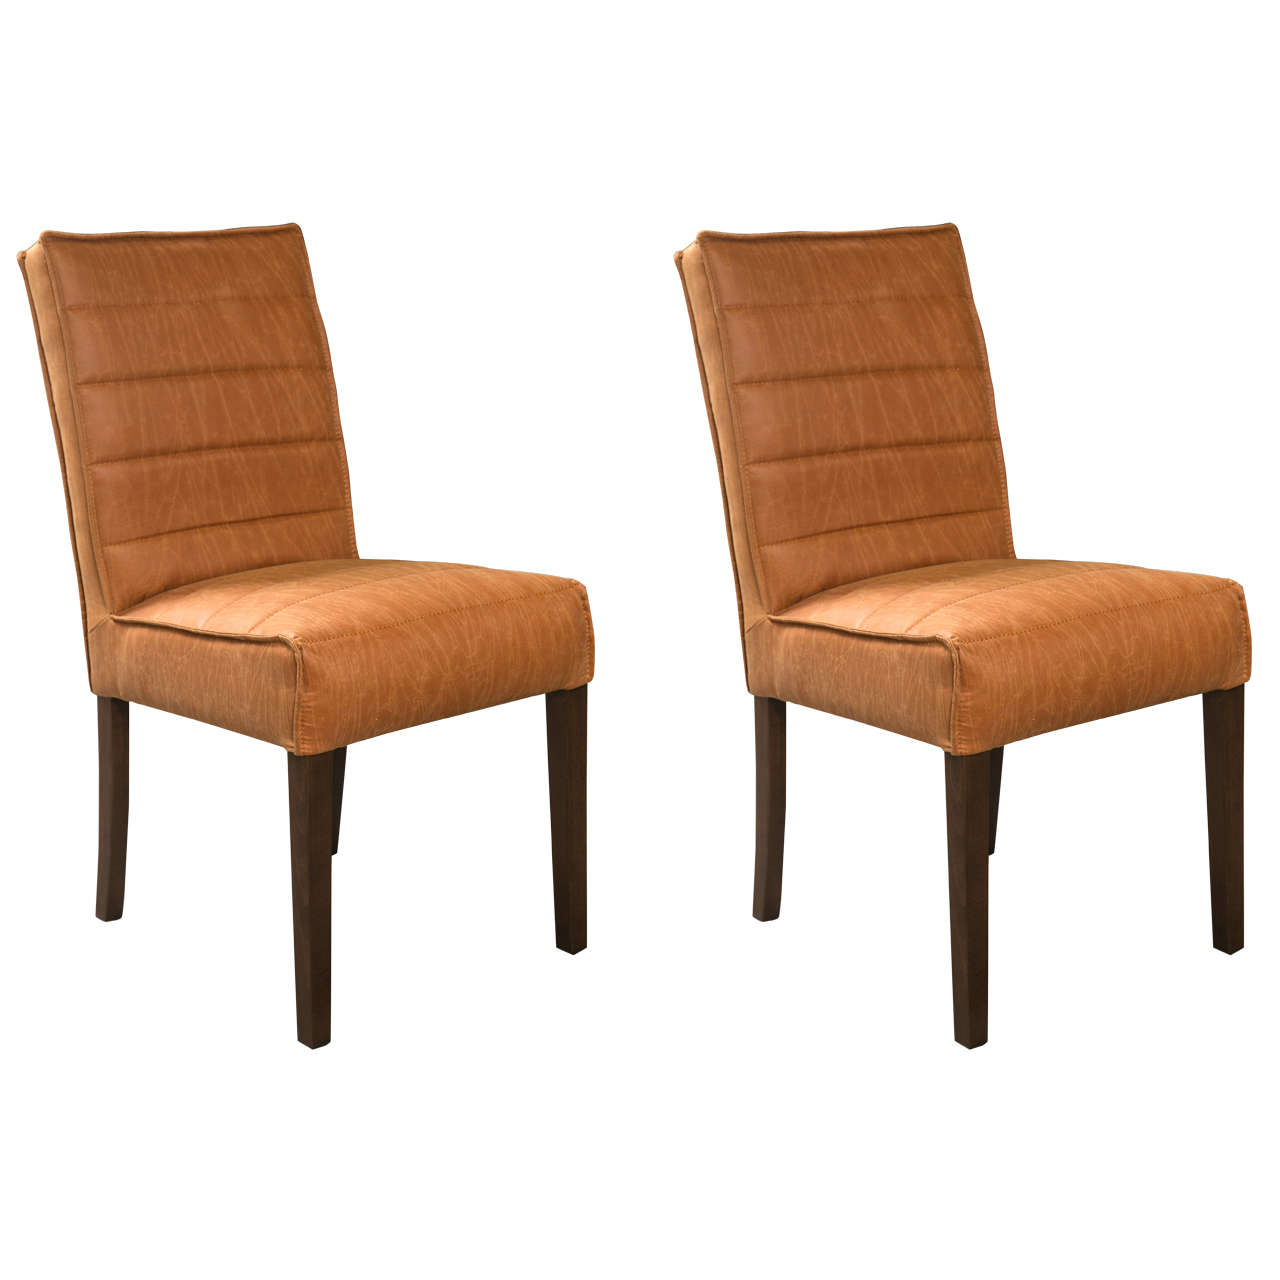 Regency Style Chairs ~ Pair of hollywood regency style leather side chairs at stdibs